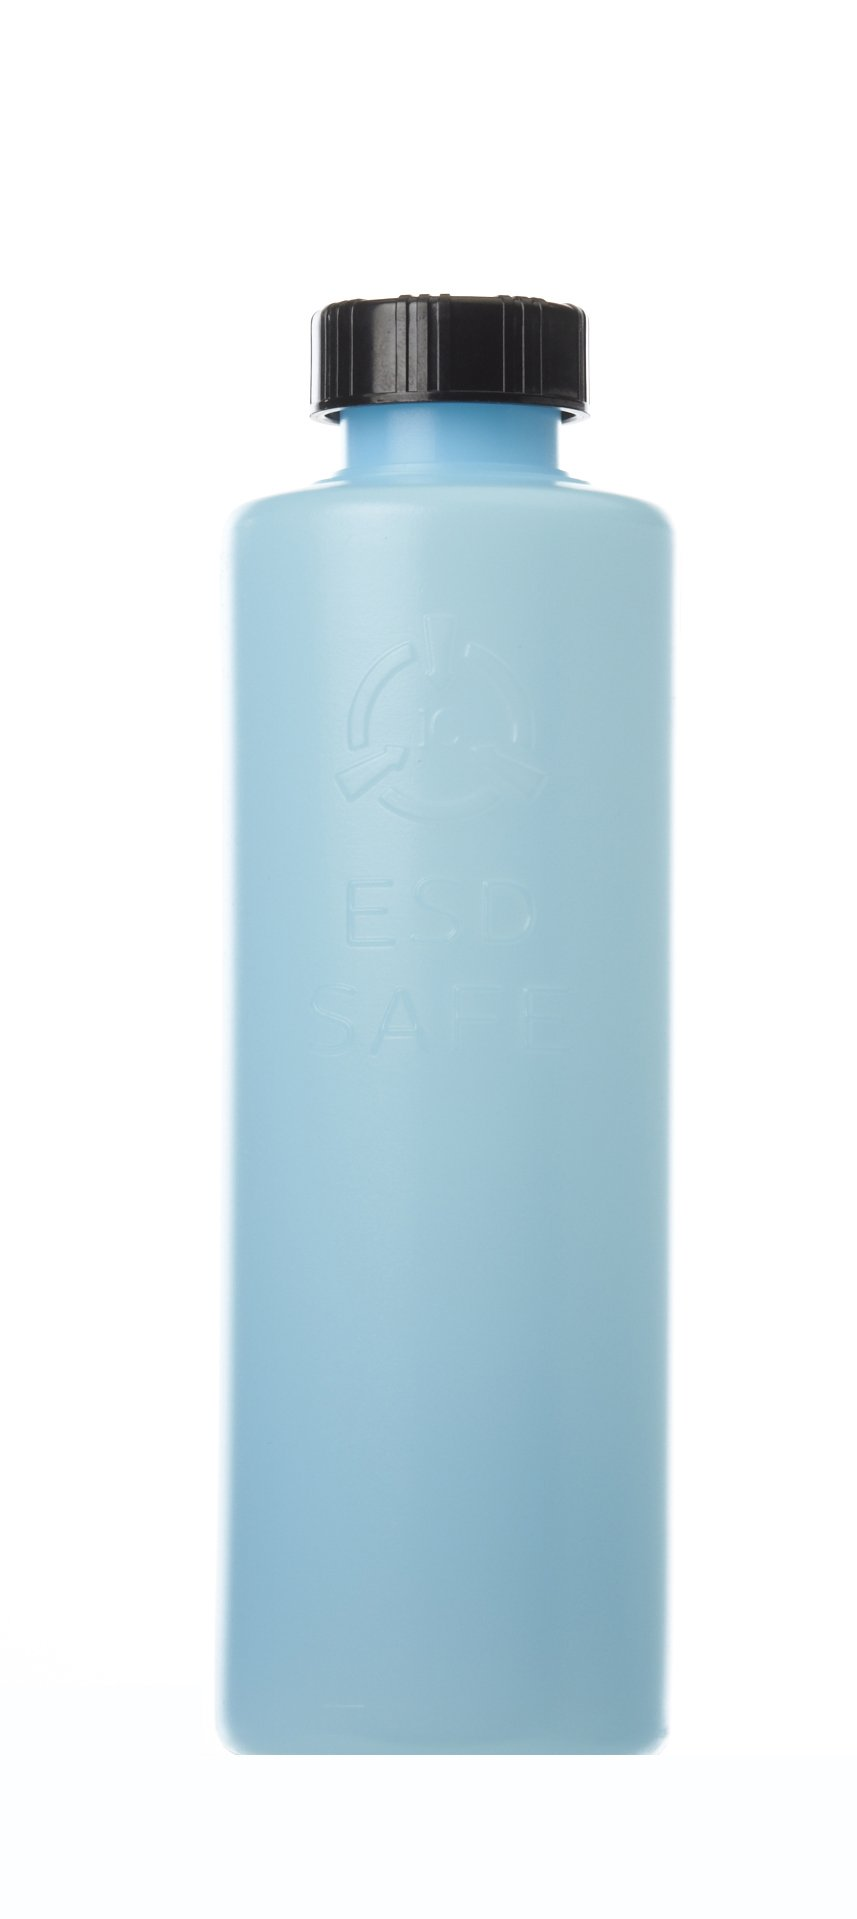 Case of 50-8oz.Round Storage Bottle with lid ESD Safe, Static Dissipative, Blue Bottle. Average Surface resistivity of 10^9 to 10^10. Will dissipate a Charge of 5000 Volts in +/-2 secs. by R&R Lotion